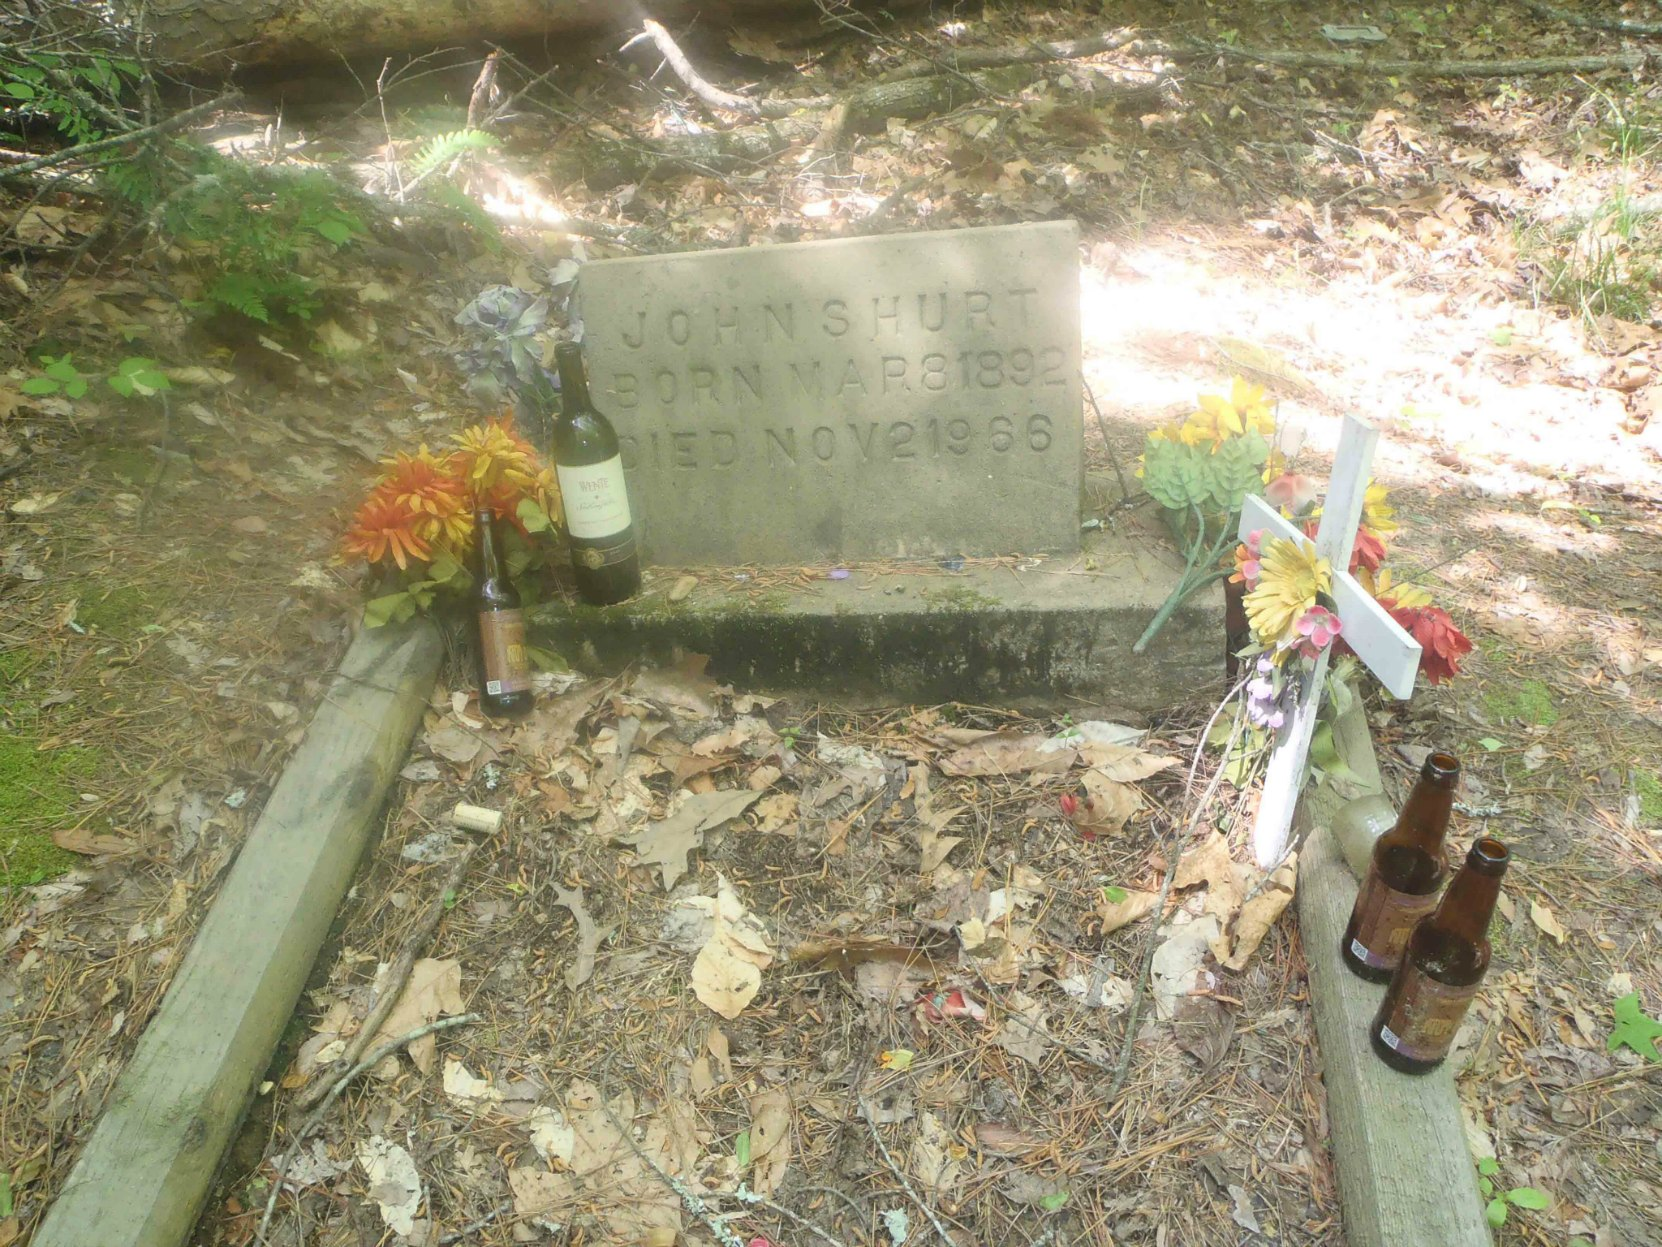 Mississippi John Hurt's grave, Avalon, Mississippi, with tributes left by fans.